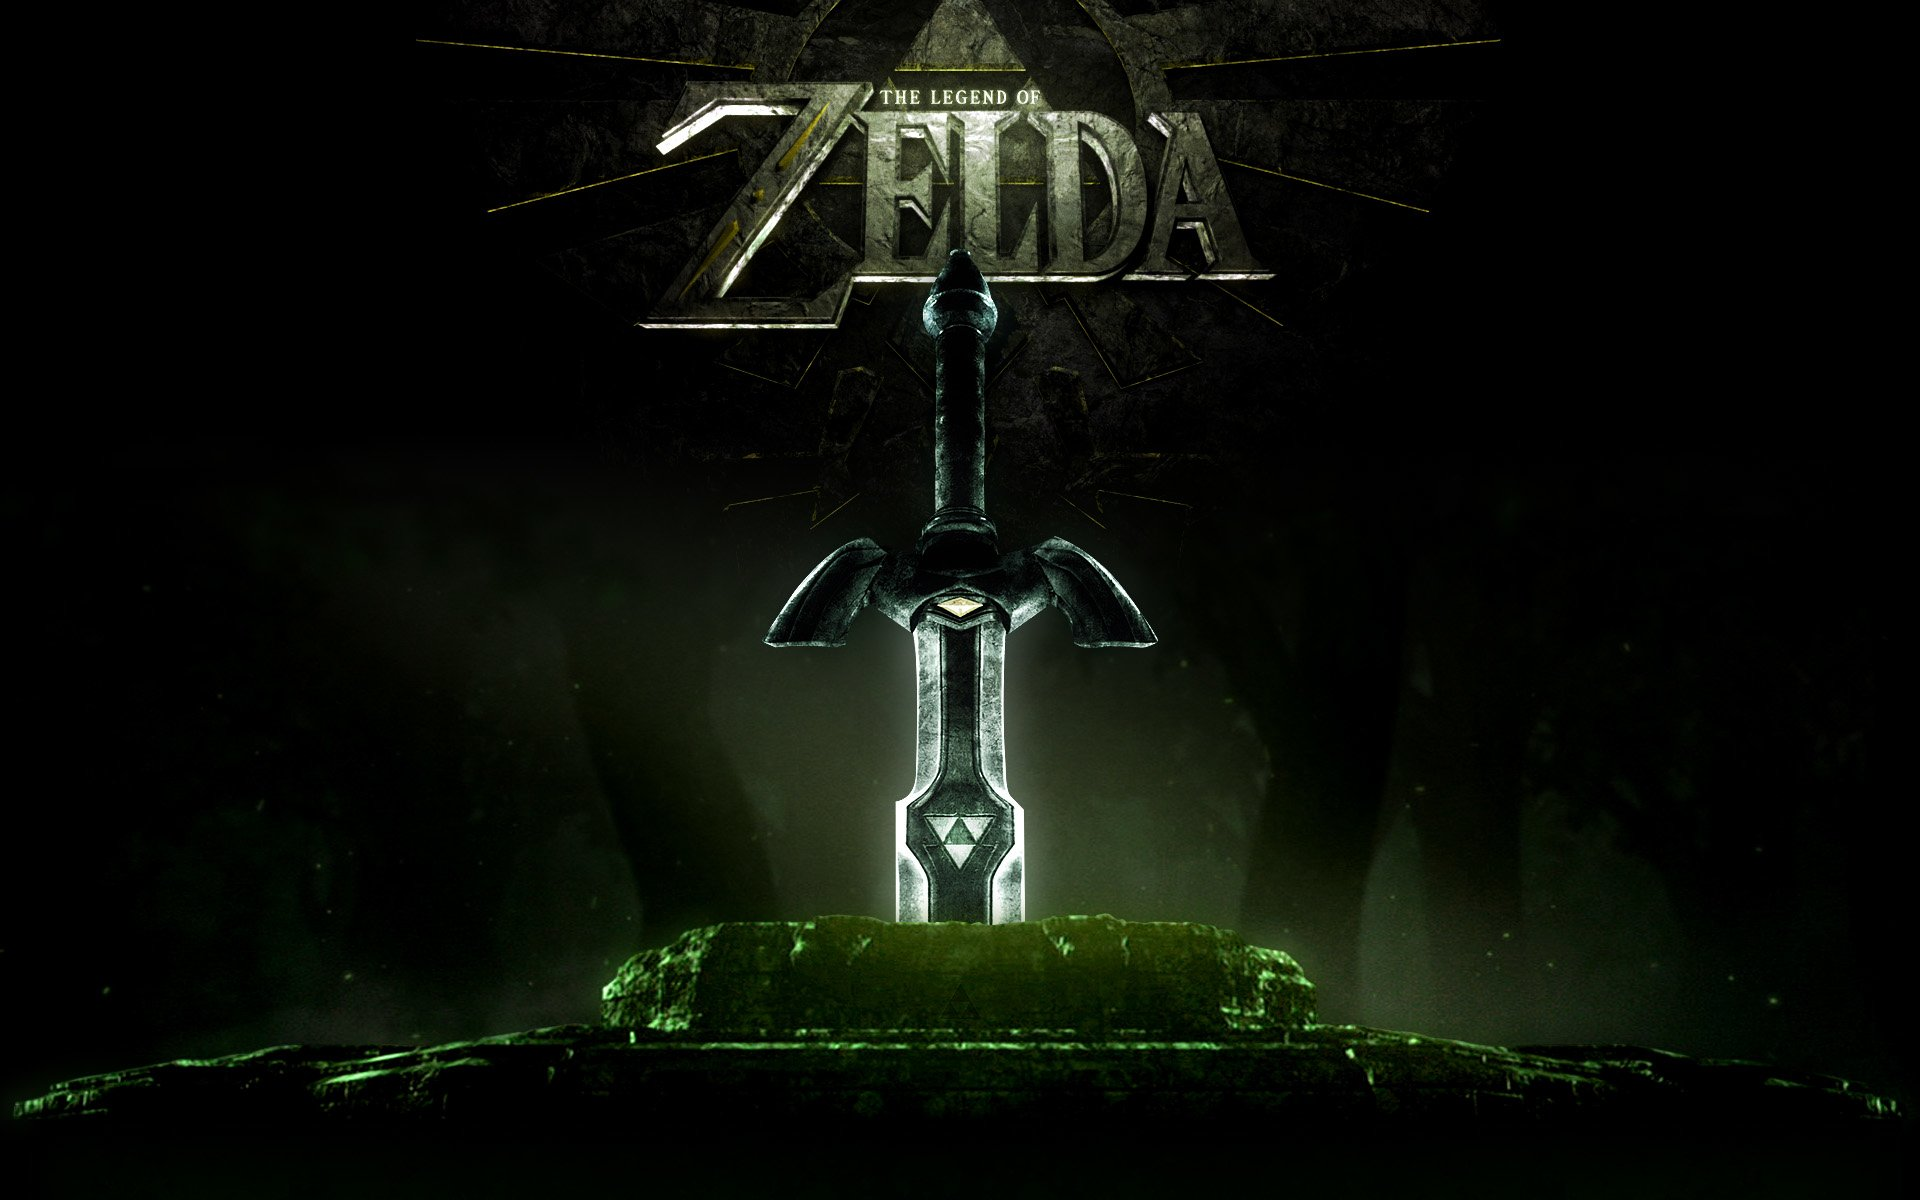 Computerspiele - The Legend Of Zelda  Wallpaper